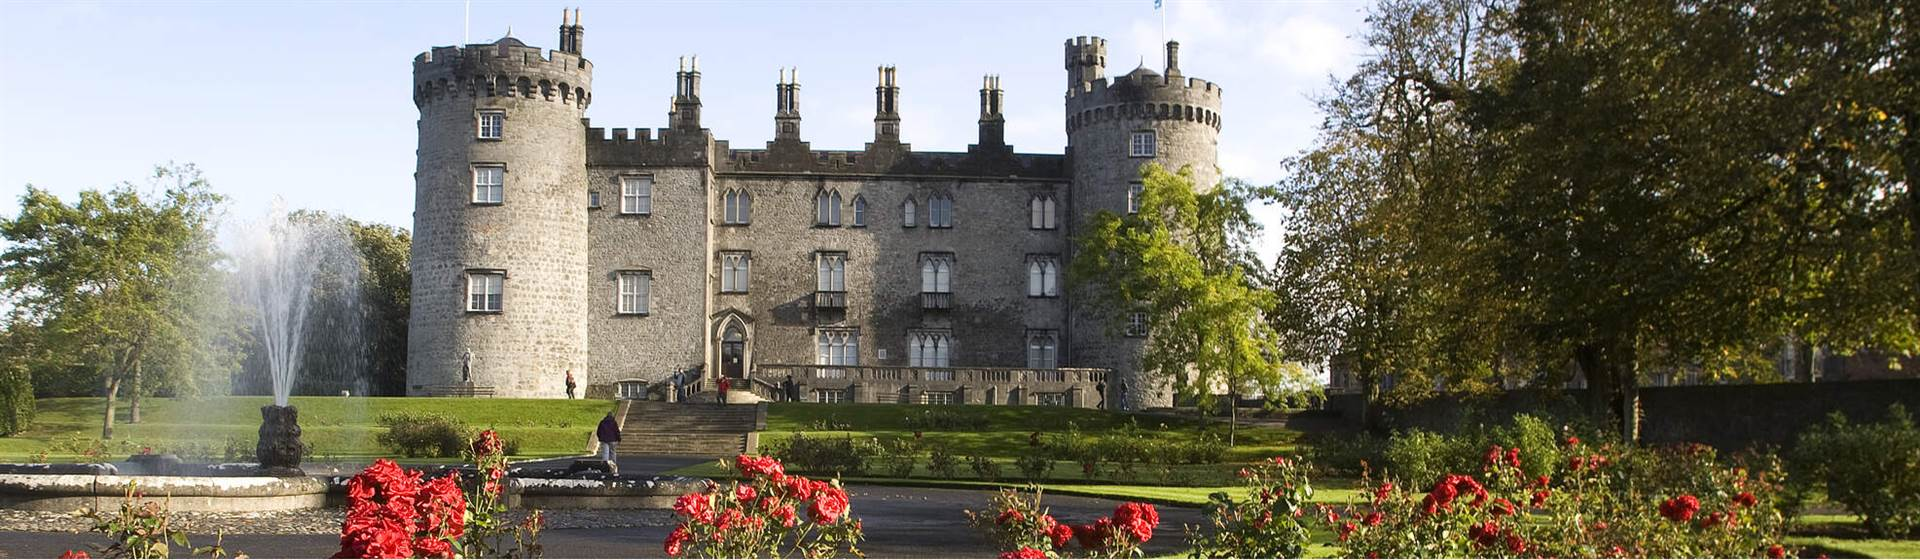 Killkenny Castle - Failte Ireland